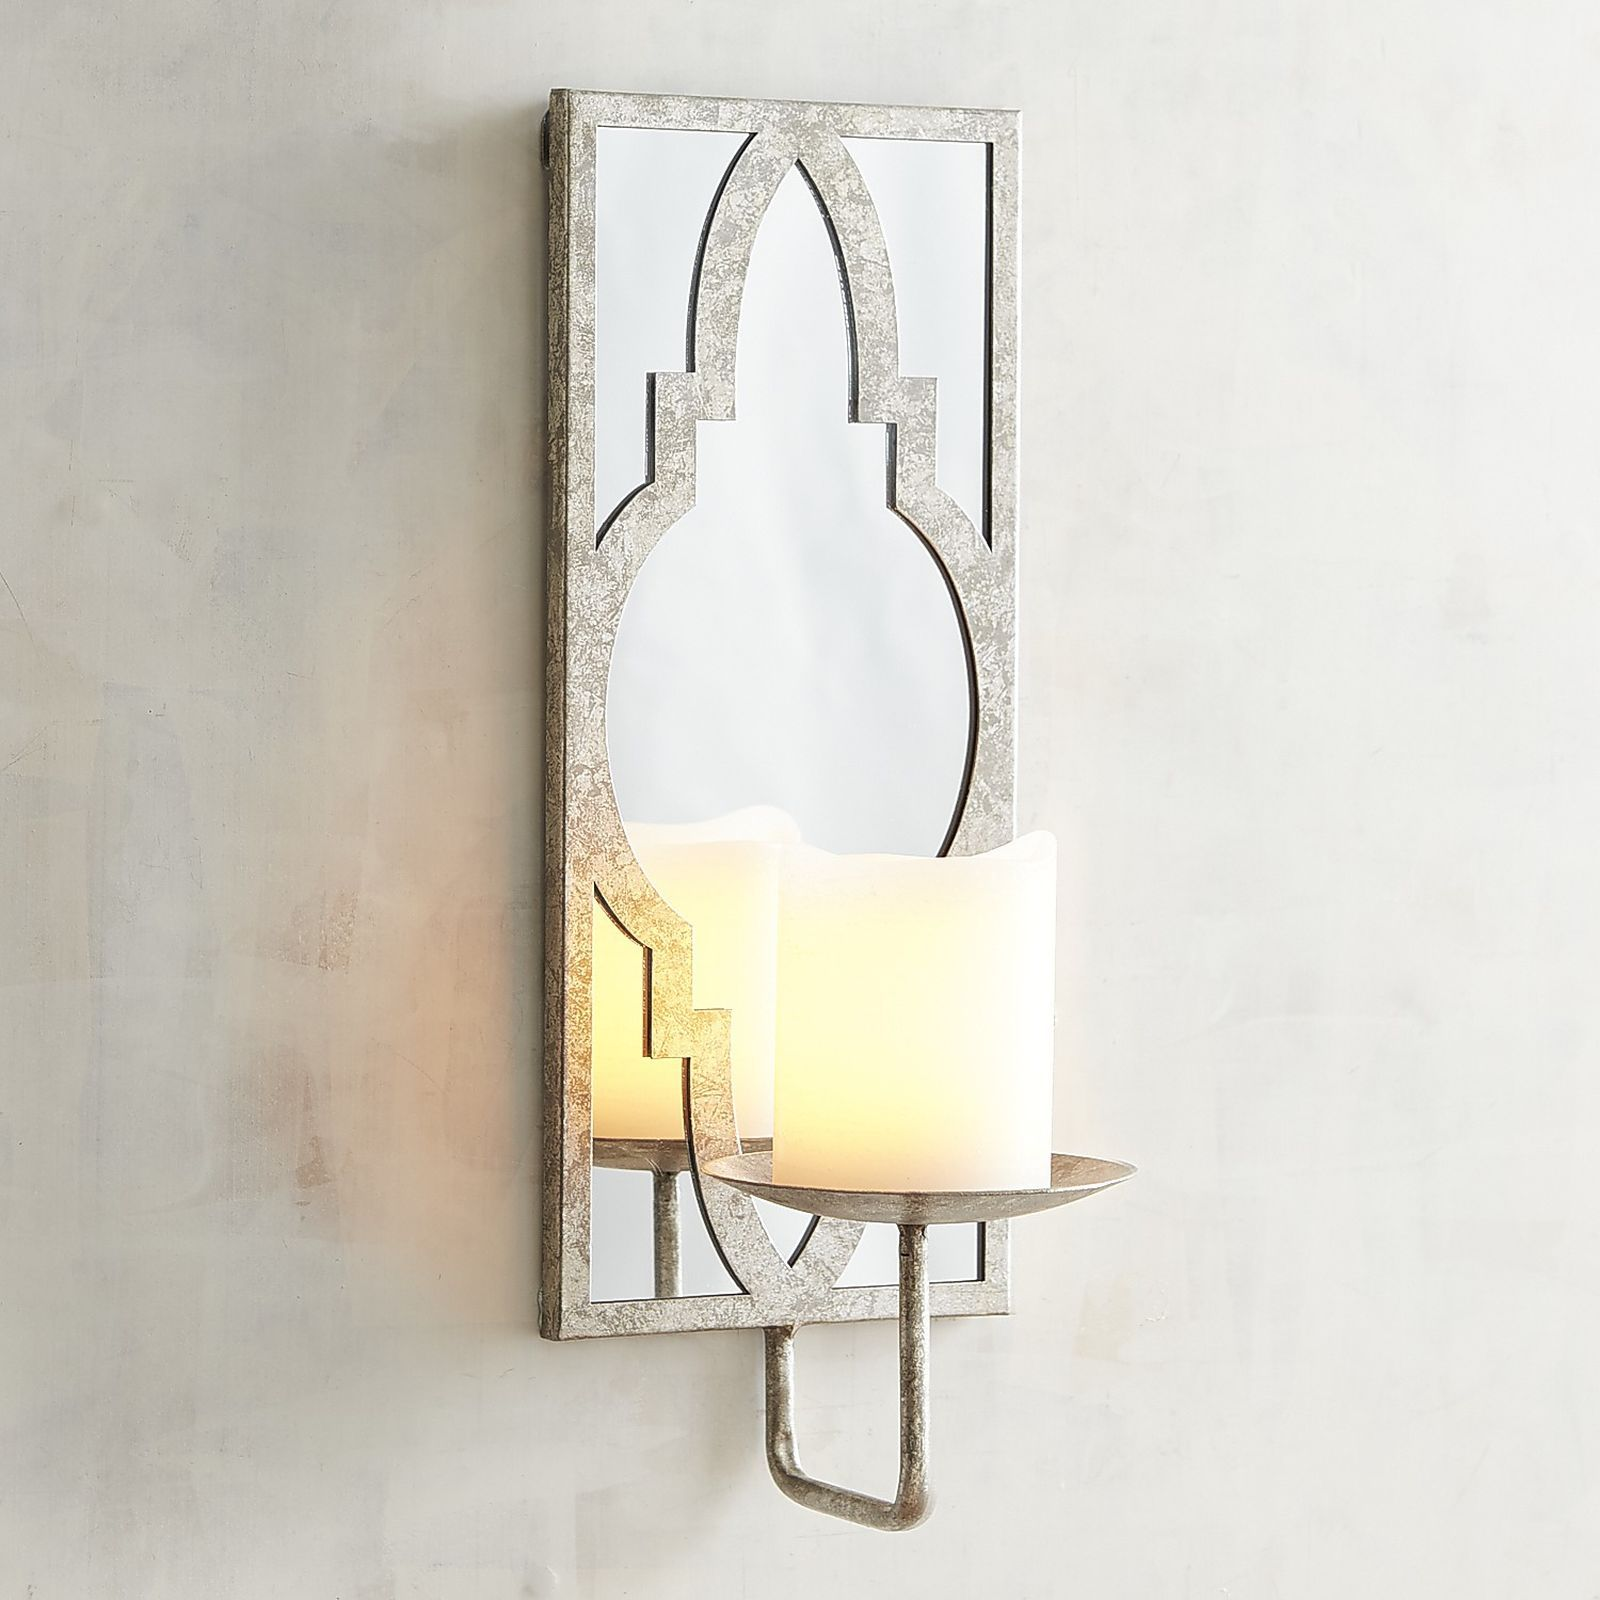 Silver Mirrored Candle Holder Wall Sconce   Wall candle ... on Decorative Wall Sconces Candle Holders Centerpieces Ebay id=86056